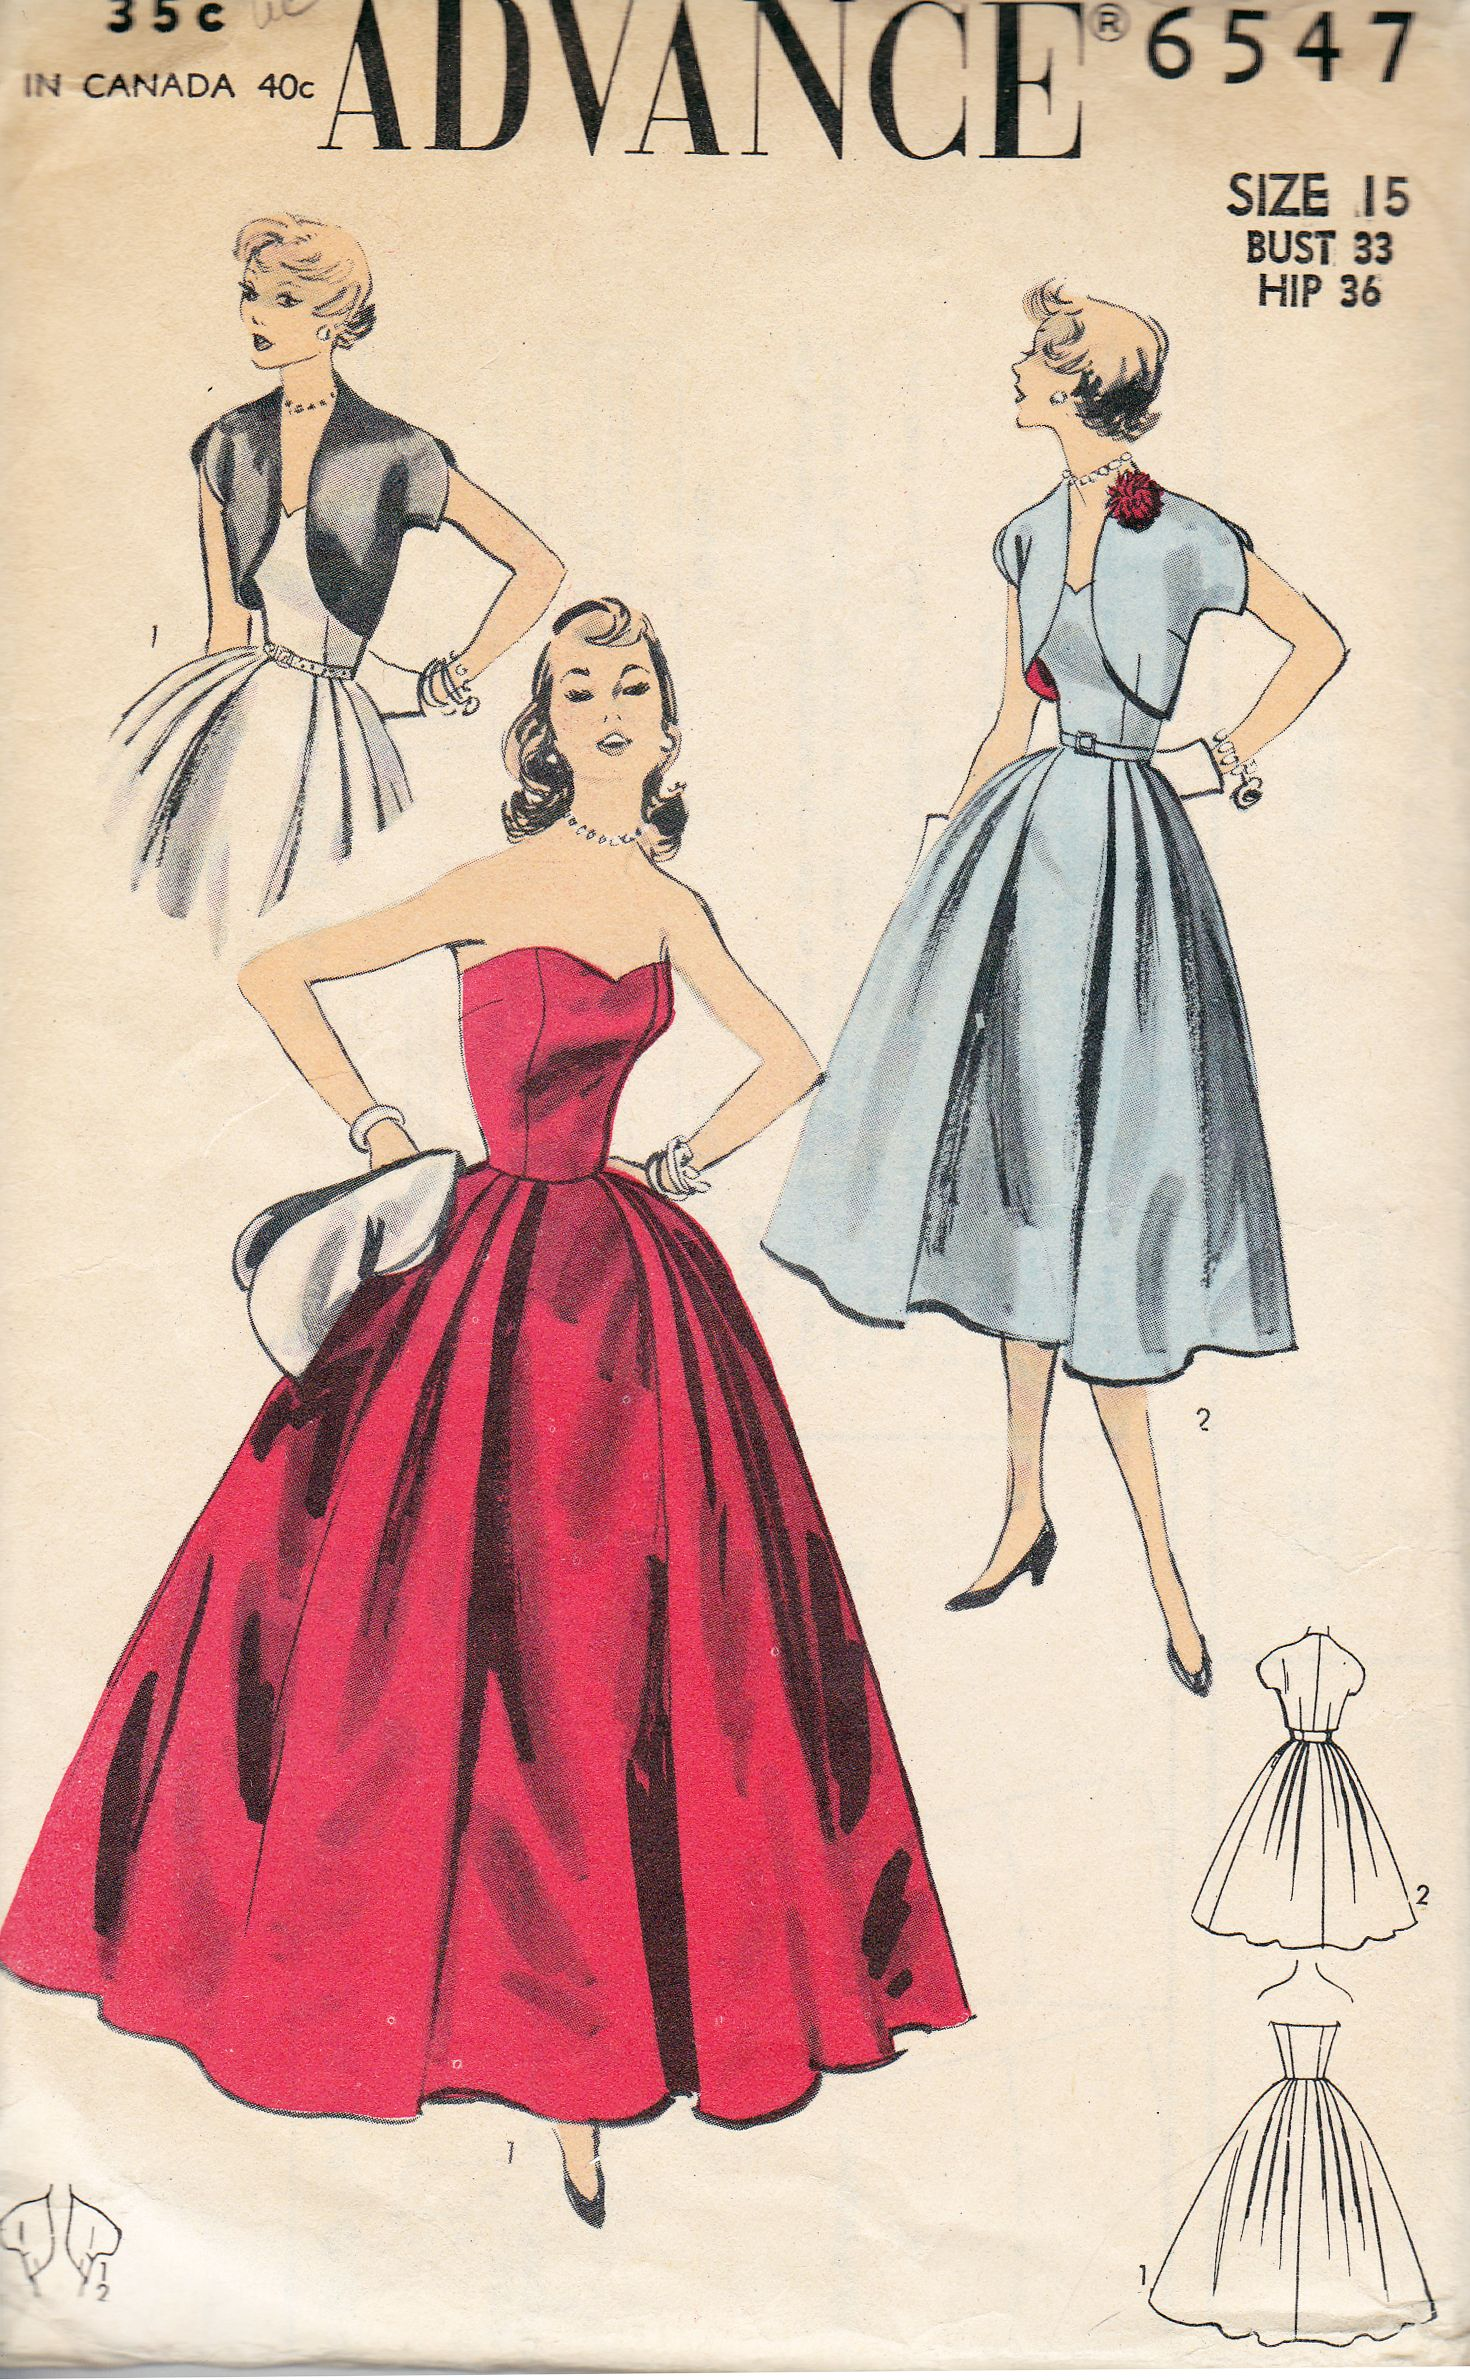 1950s | Sewing patterns, 1950s and Fashion women